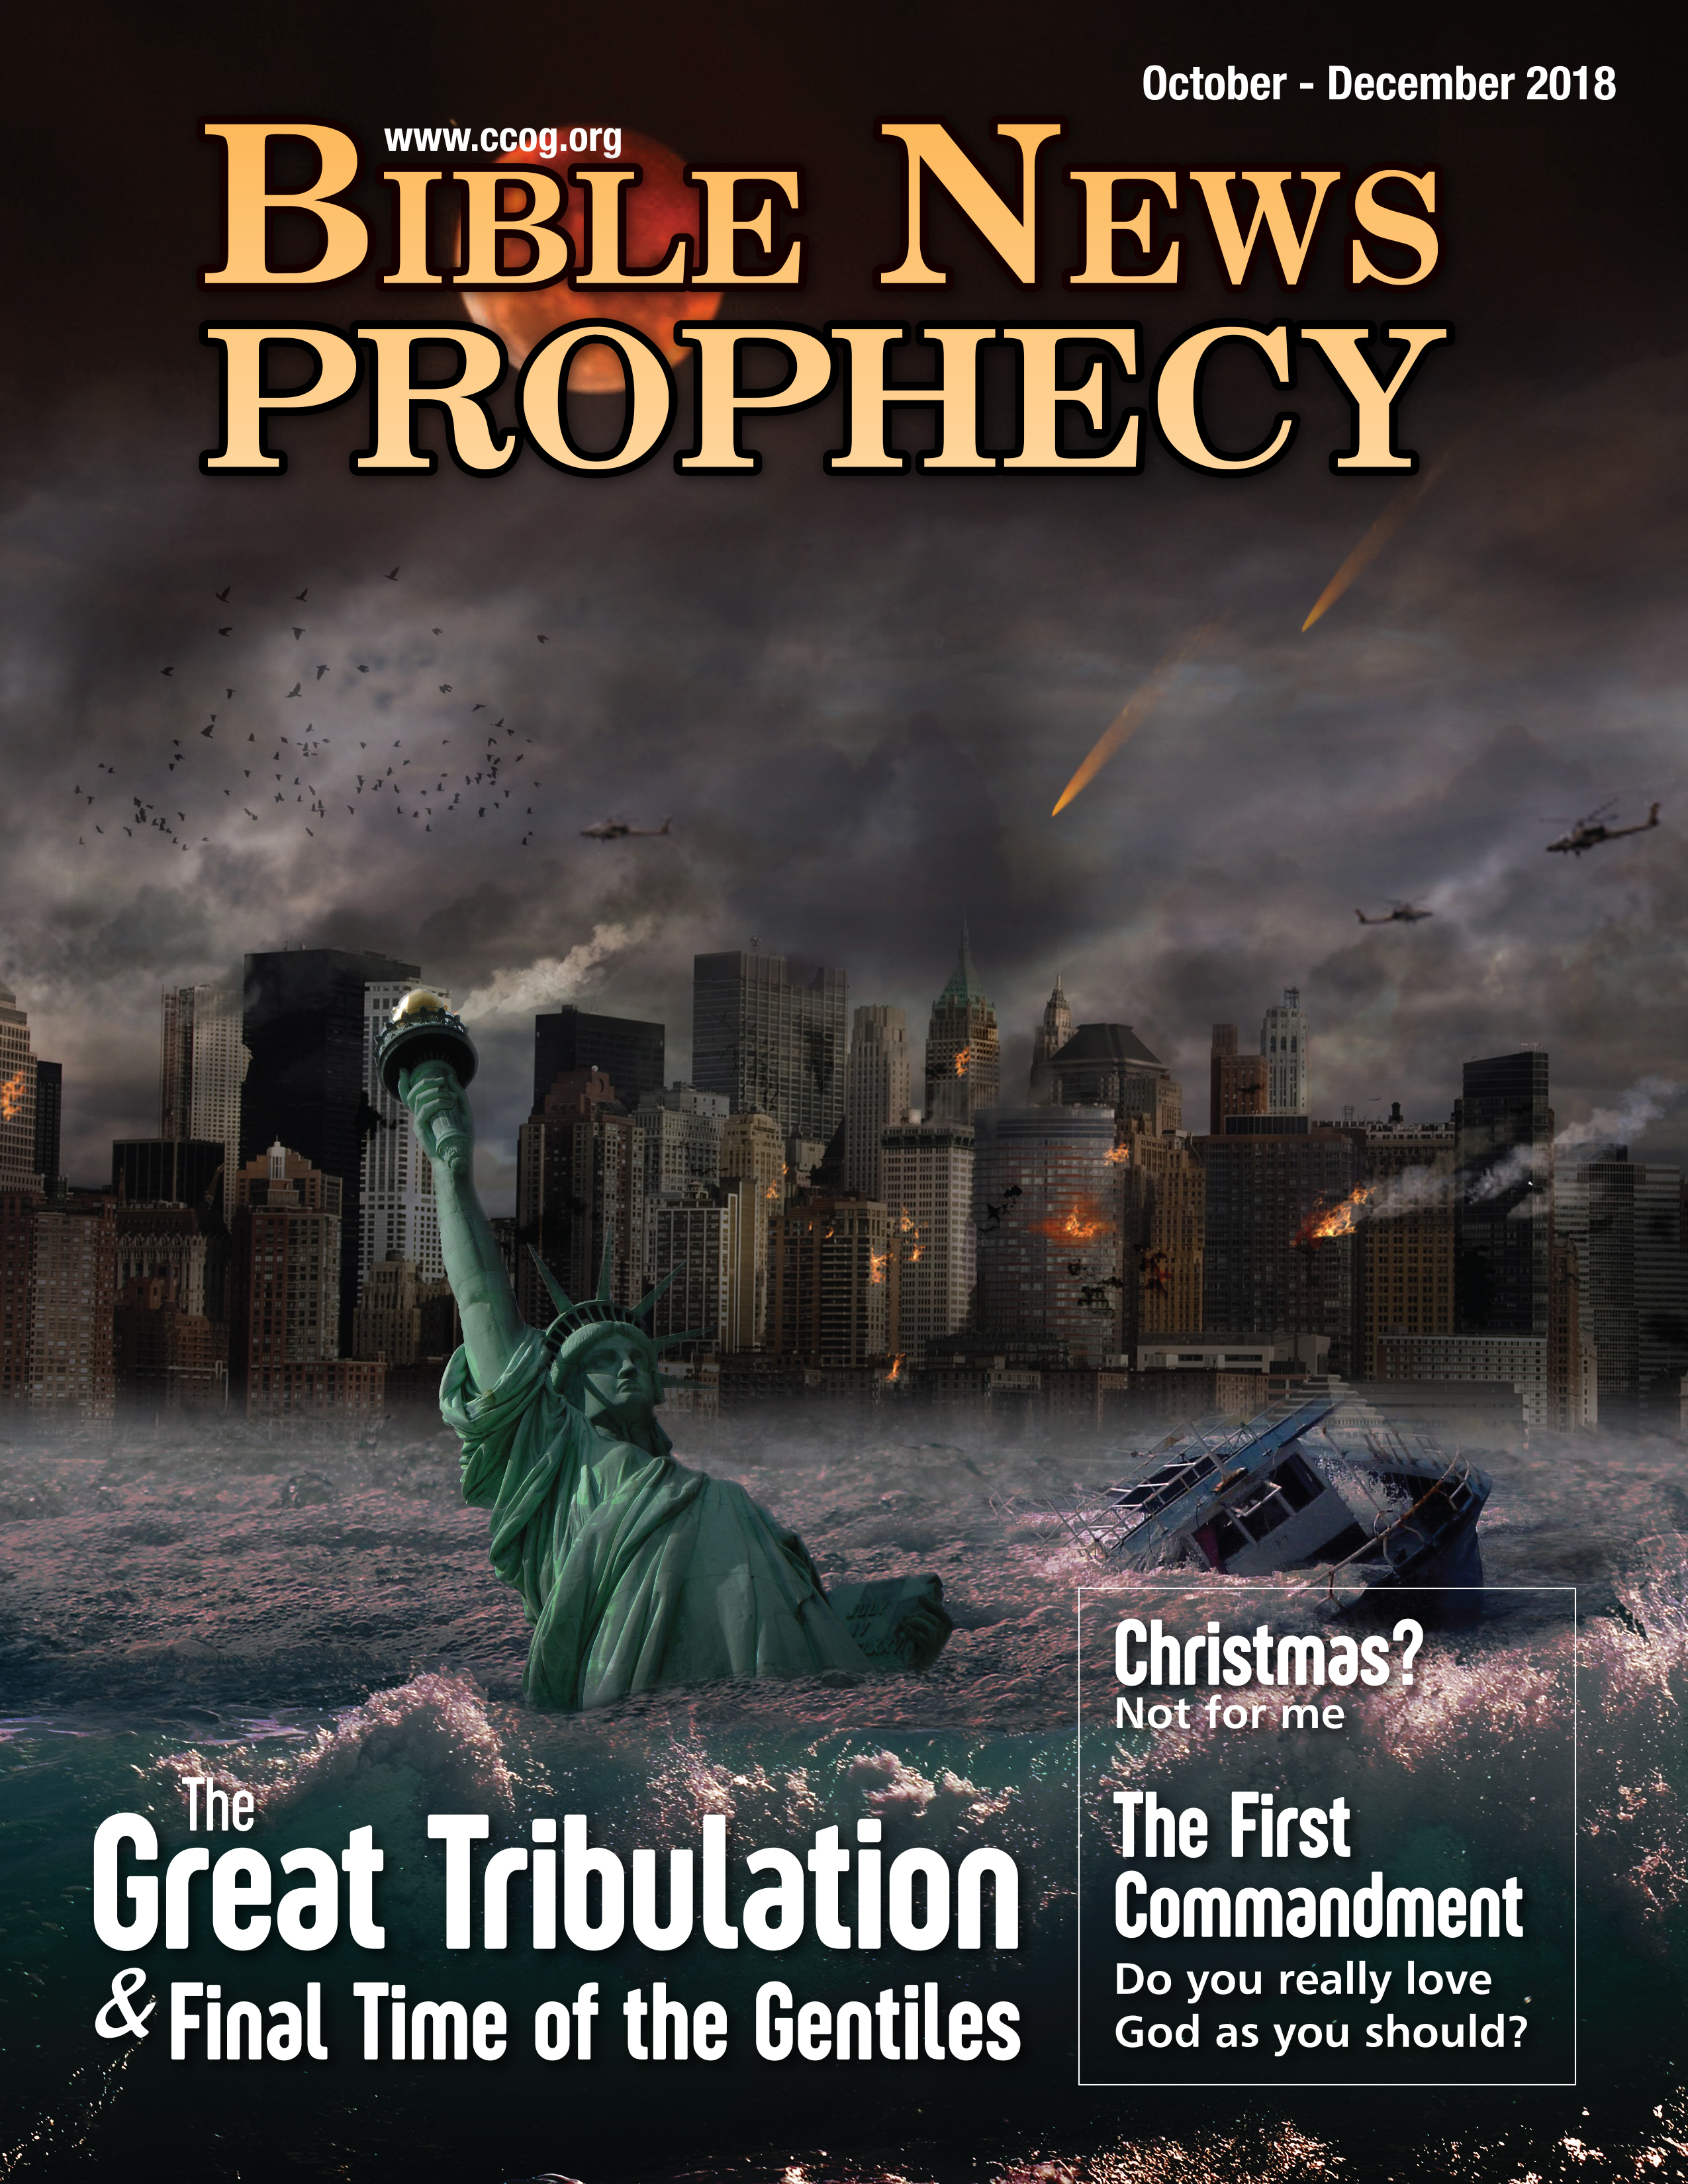 Bible News Prophecy October-December 2018: The Great Tribulation and Final Time of the Gentiles